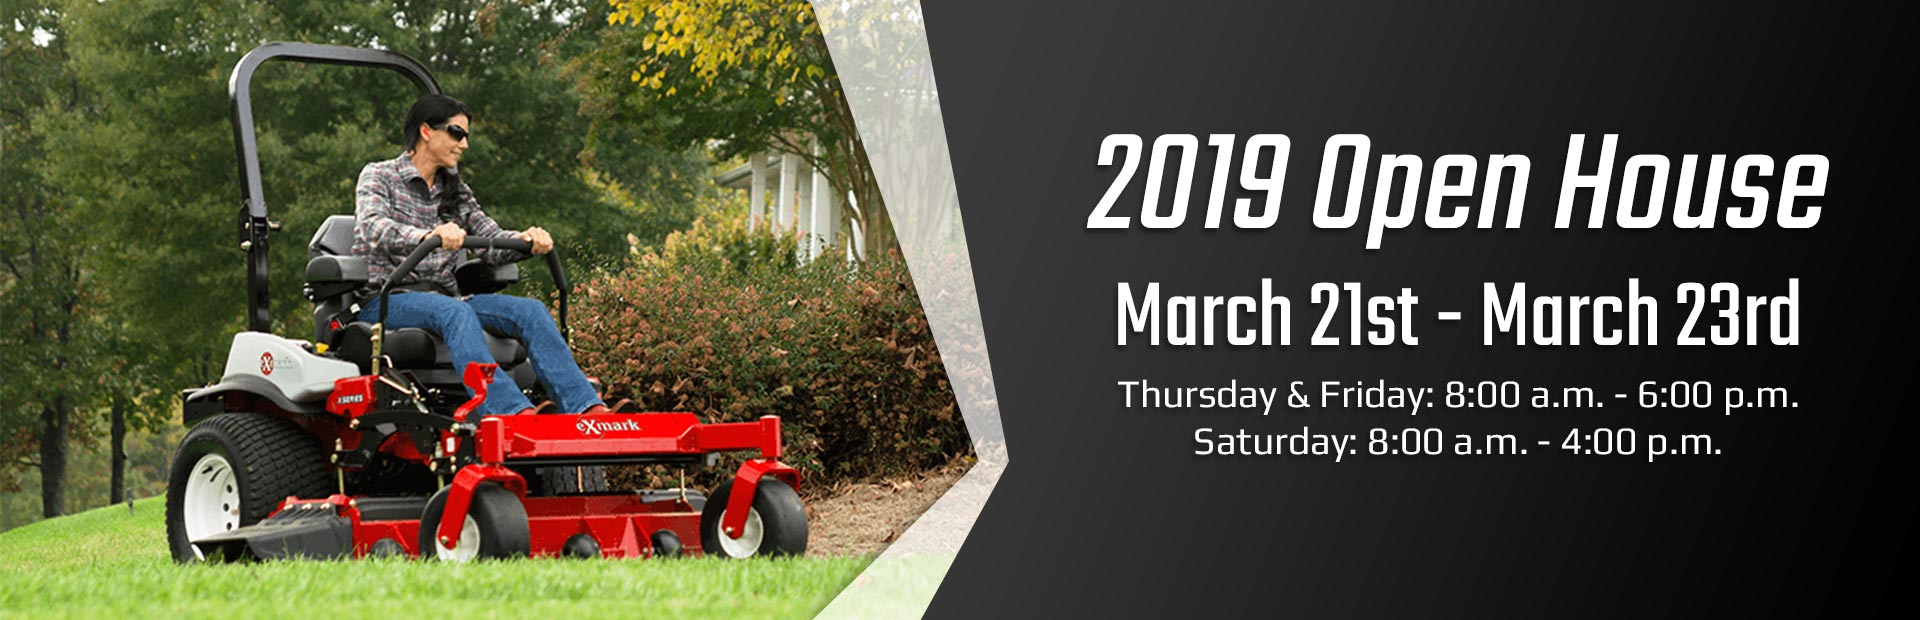 Join us March 21st - March 23rd for our 2019 Open House!